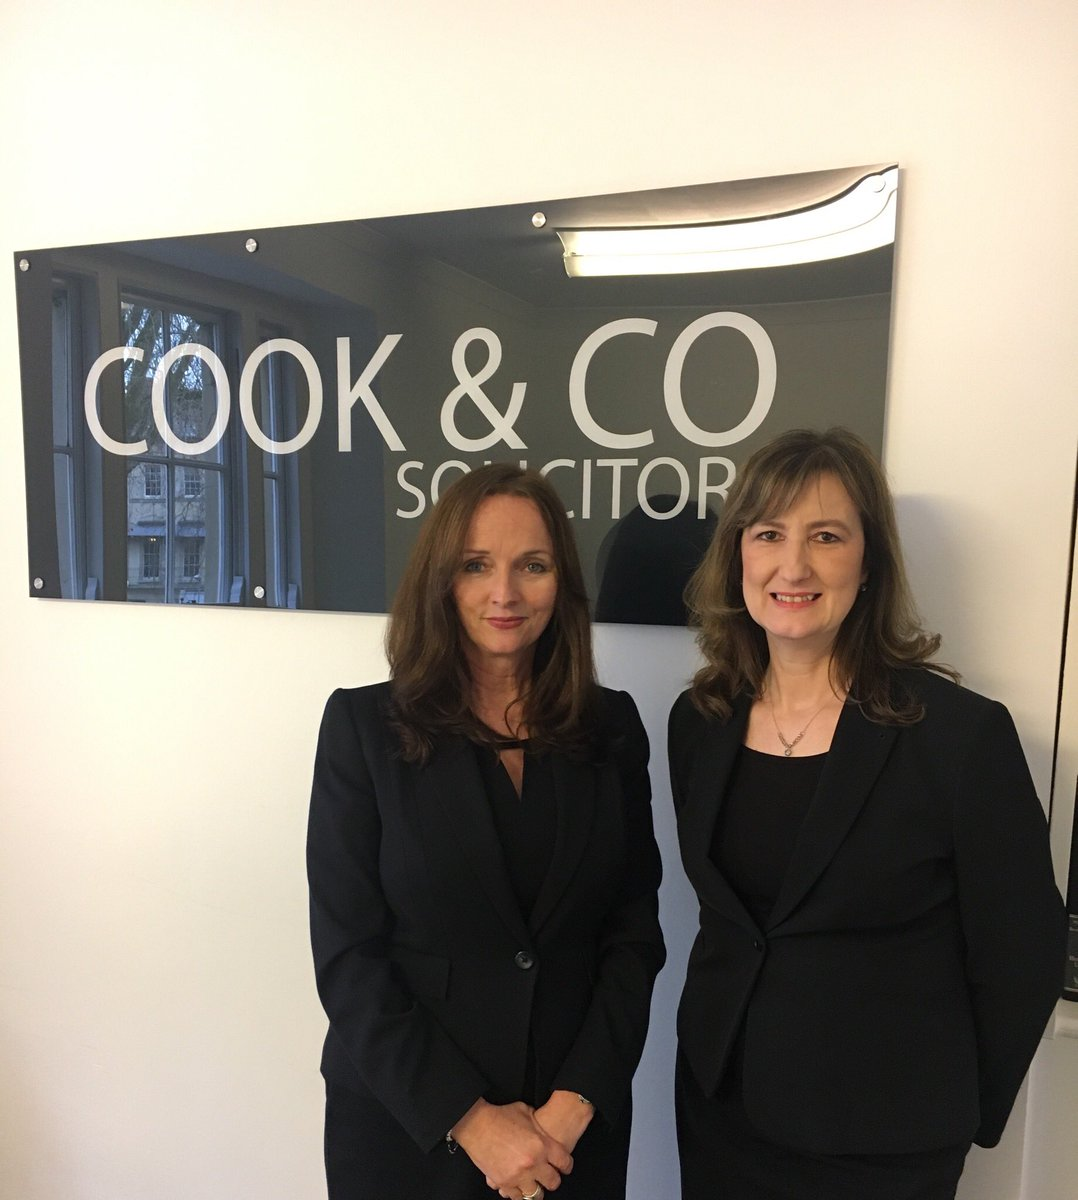 test Twitter Media - We are delighted to welcome a new Family Law Solicitor, Nicola Harvey to the Cook & Co team. For any Family Law enquiries contact Nicola via email on Nicola.harvey@cookco.co.uk https://t.co/SRwiY56C5Q